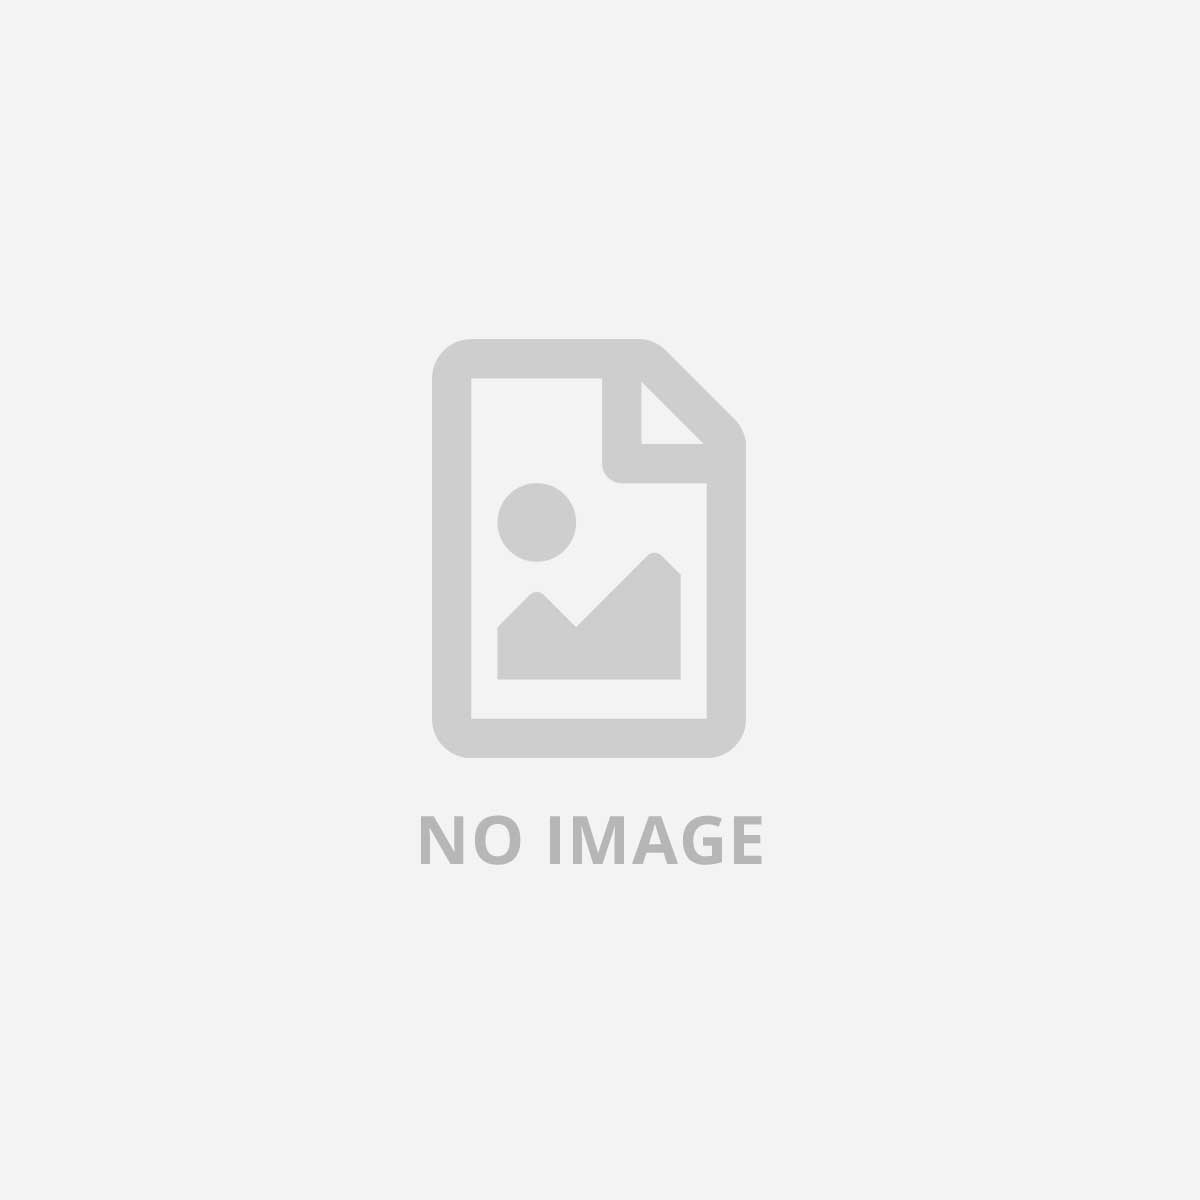 BLACK AND DECKER BLACKDECKER KS501-QS